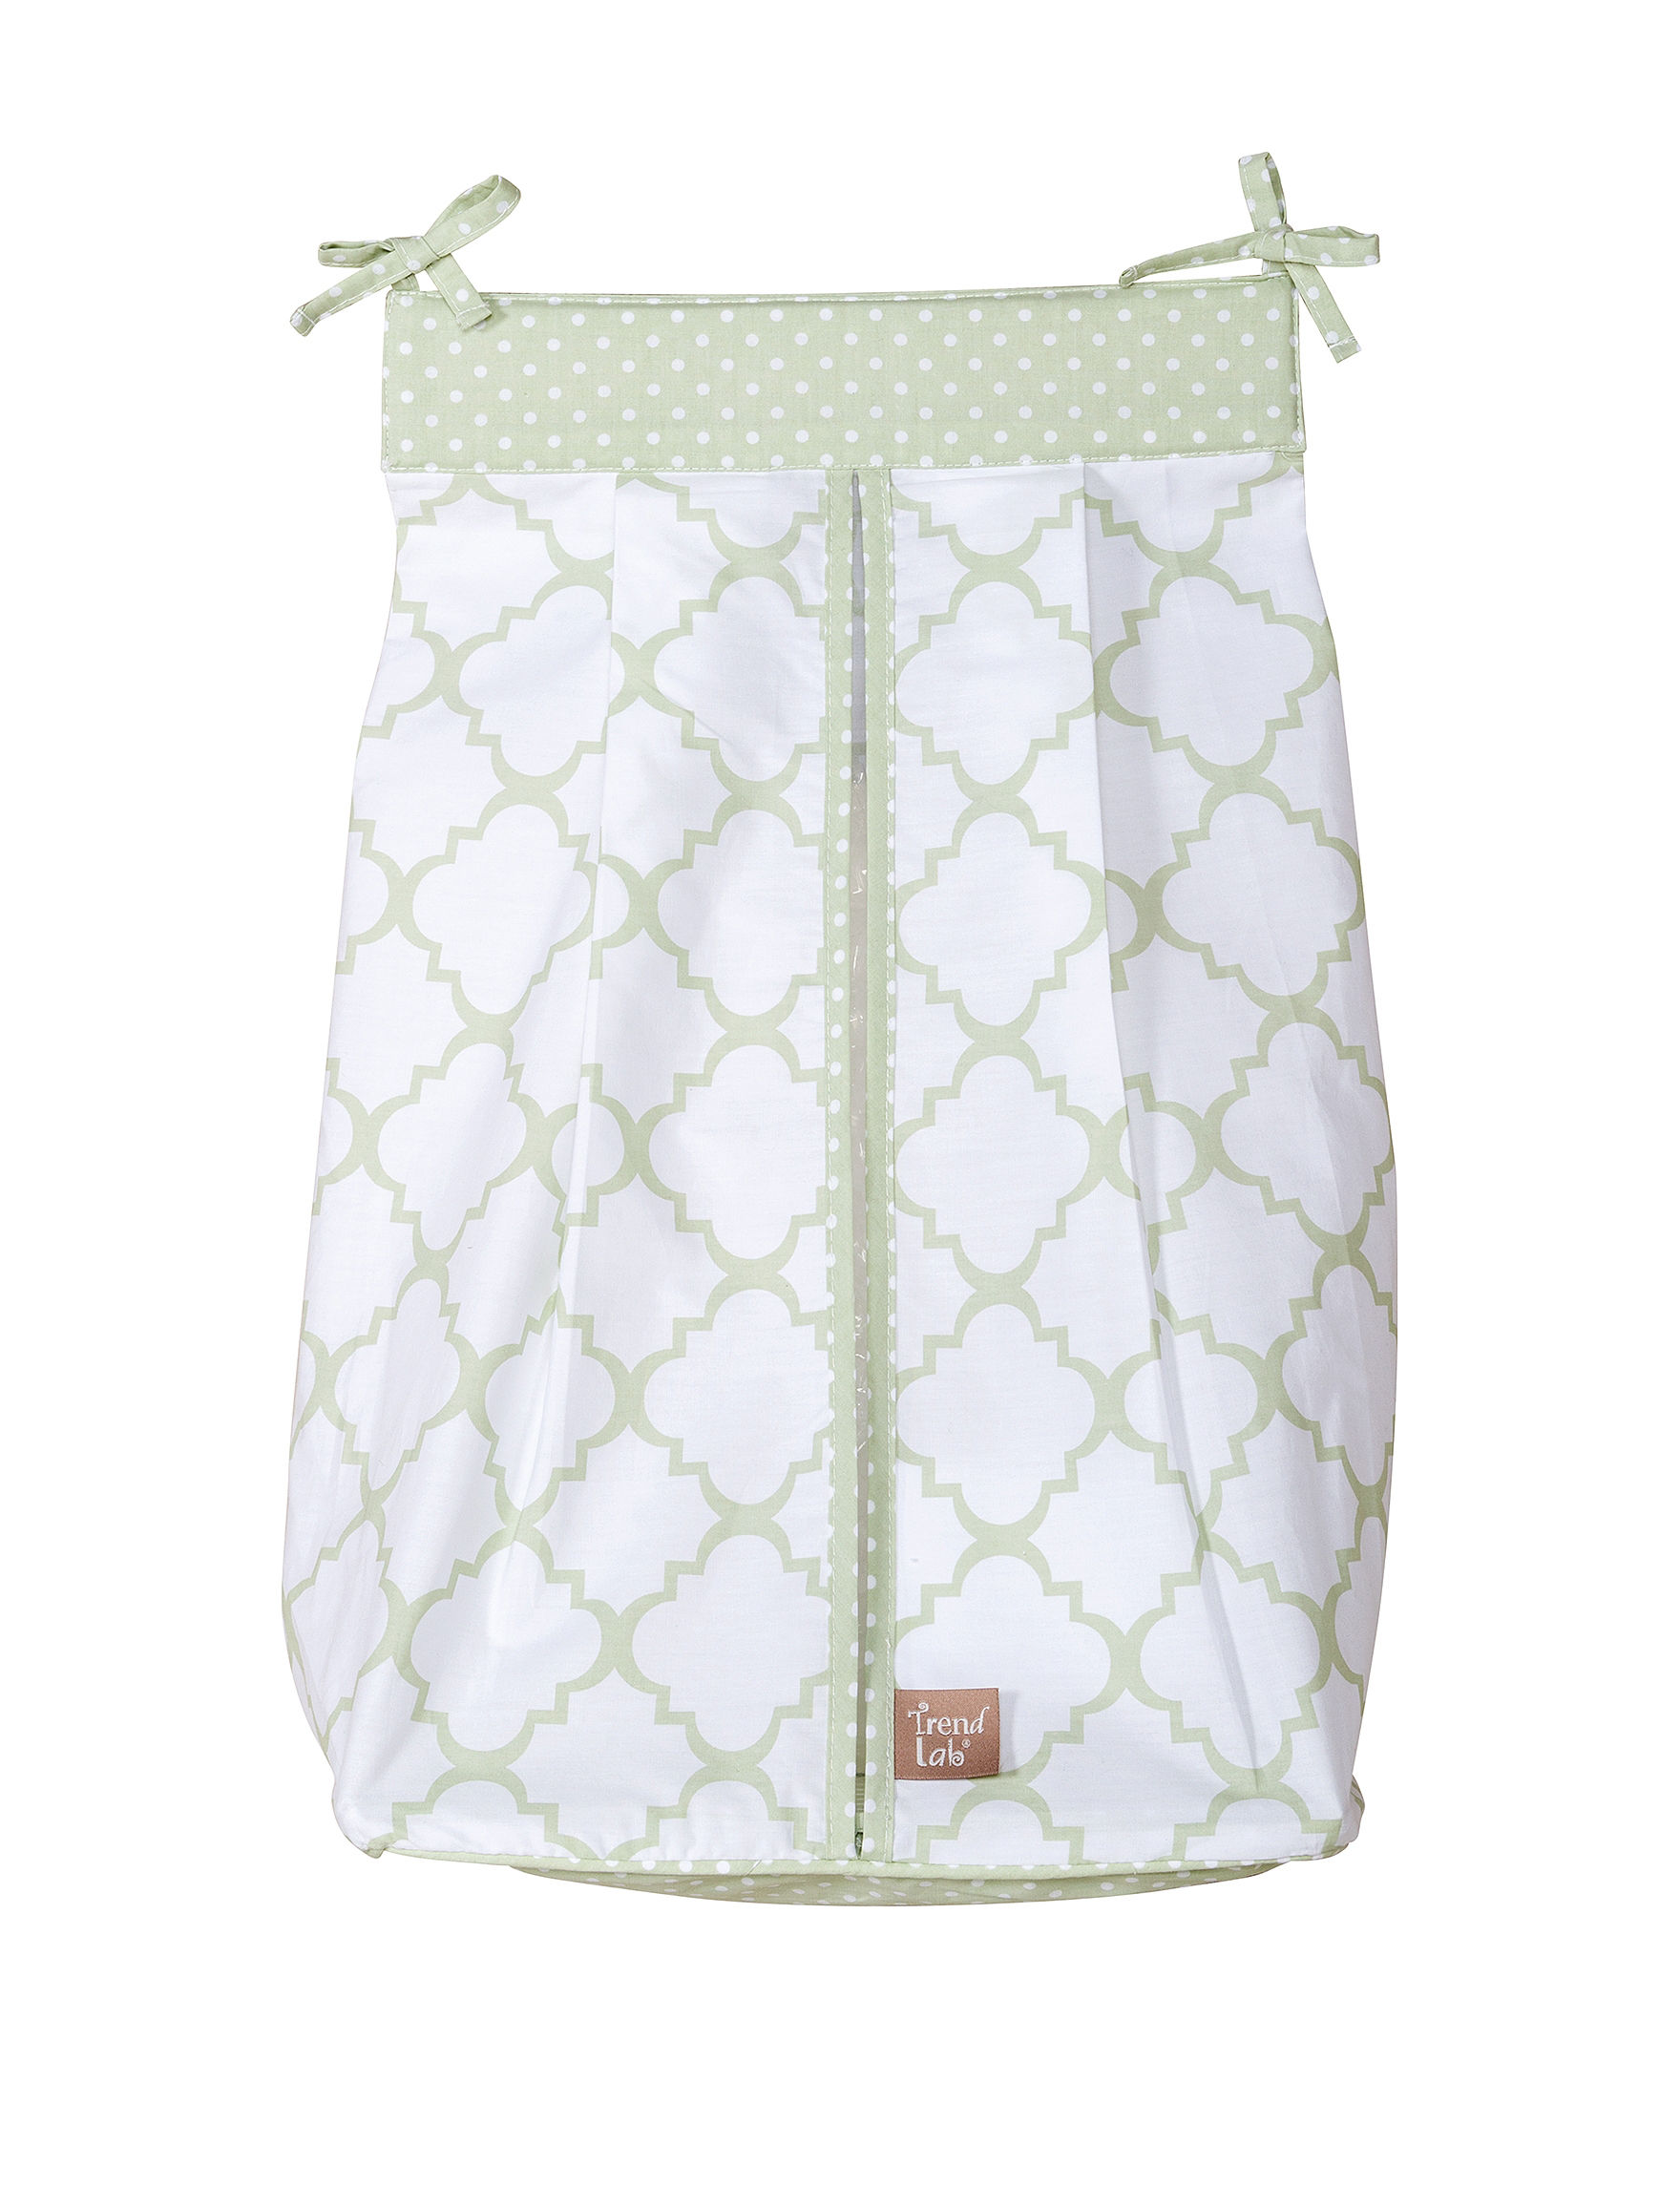 Trend Lab Green / White Diaper Bags